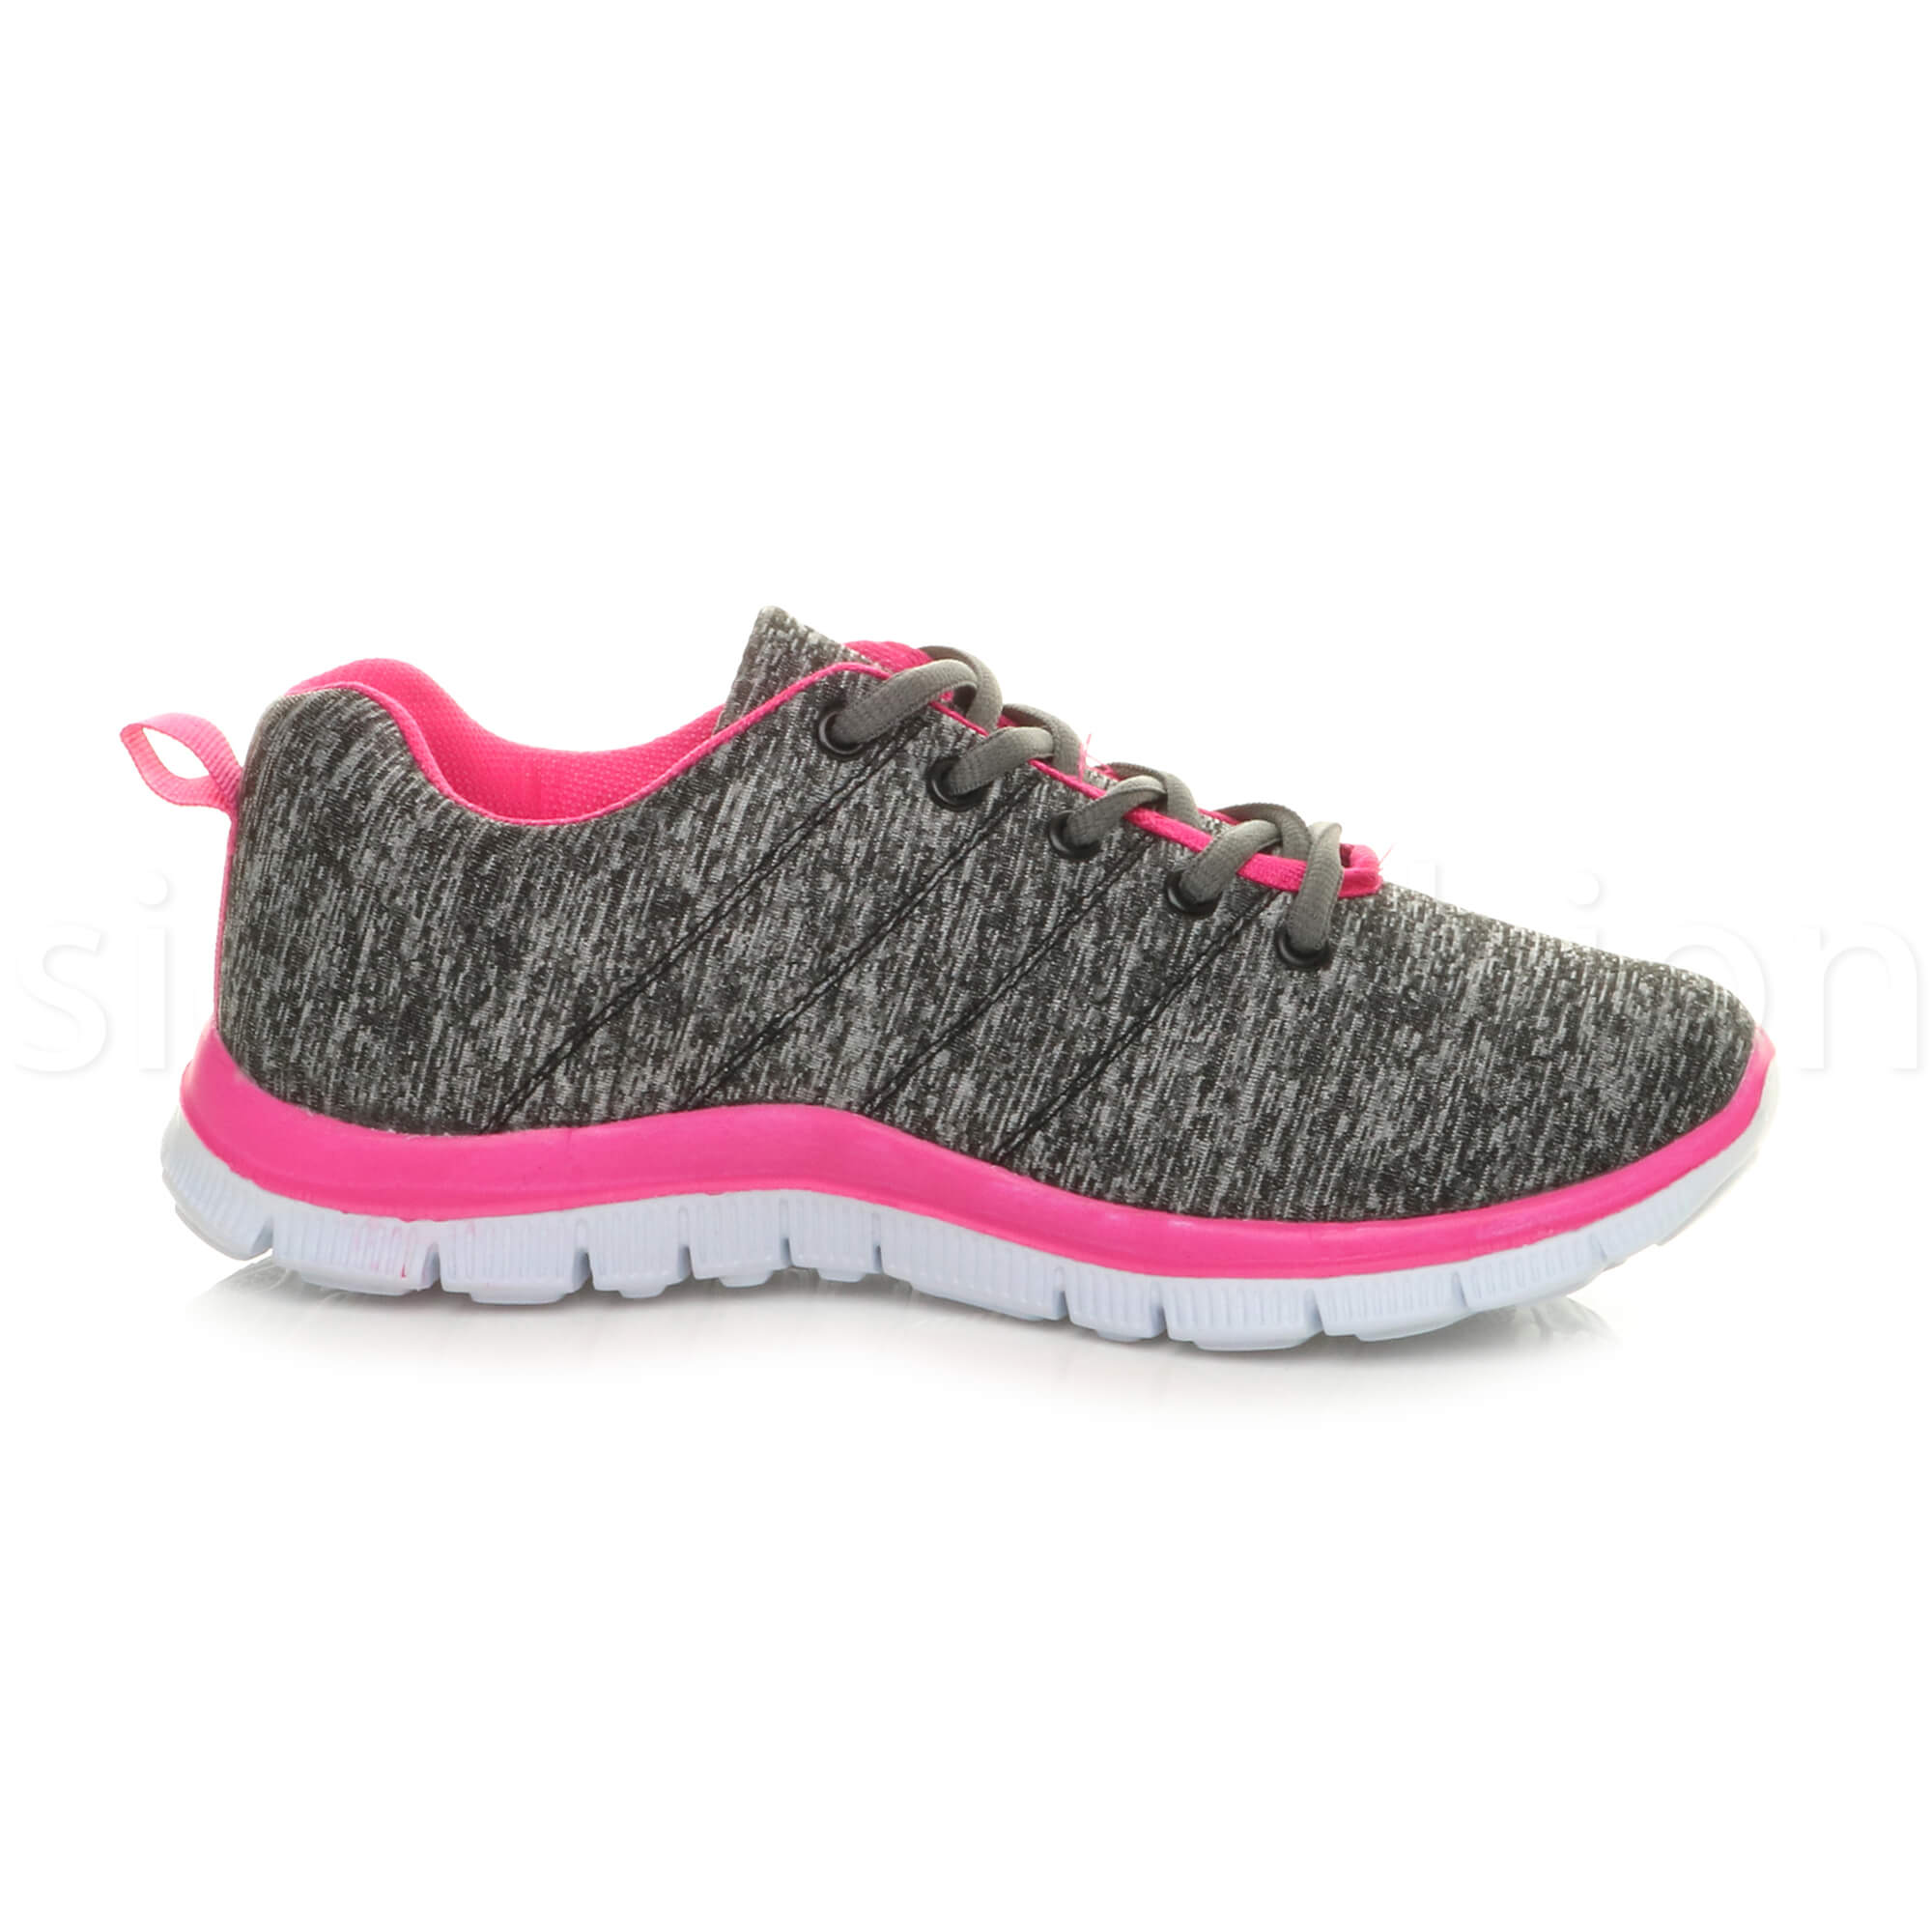 Womens-ladies-comfort-memory-foam-lace-up-trainers-activewear-sneakers-gym-shoes thumbnail 58